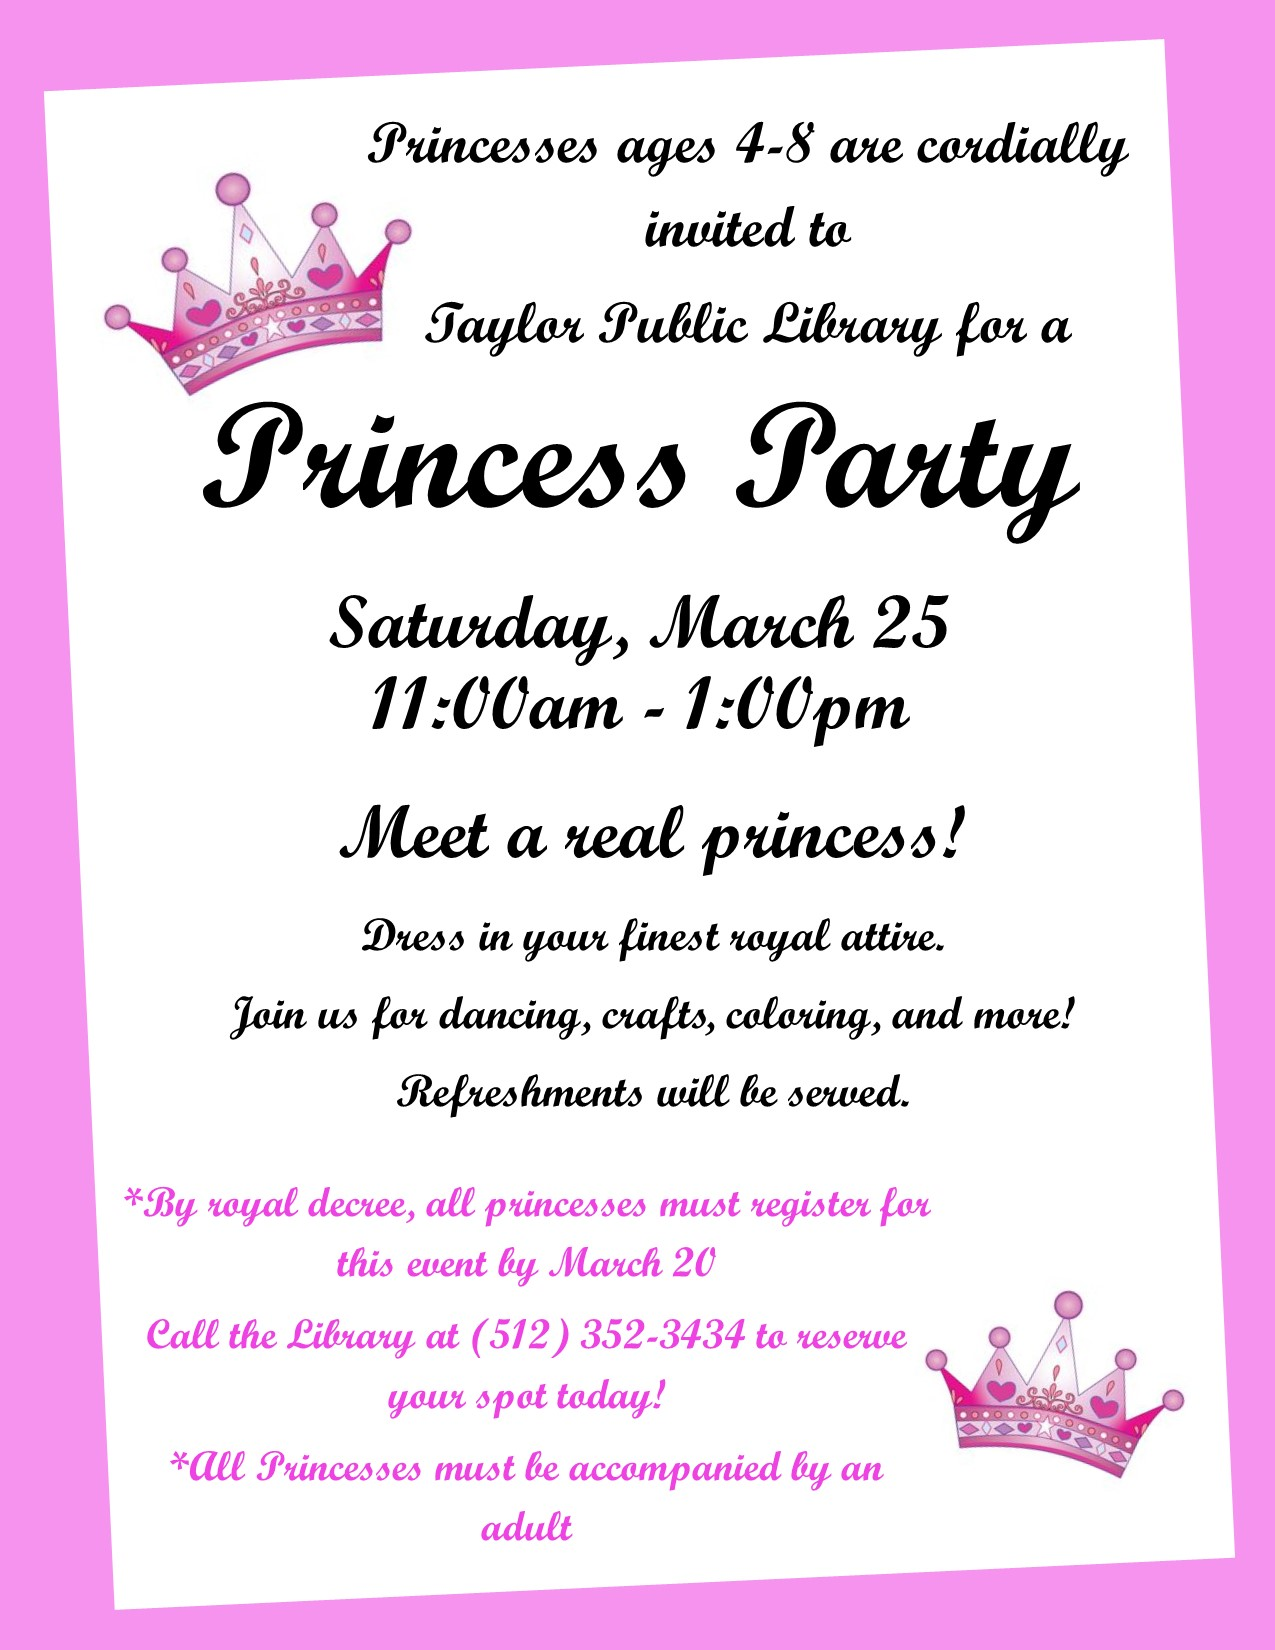 Princess party poster